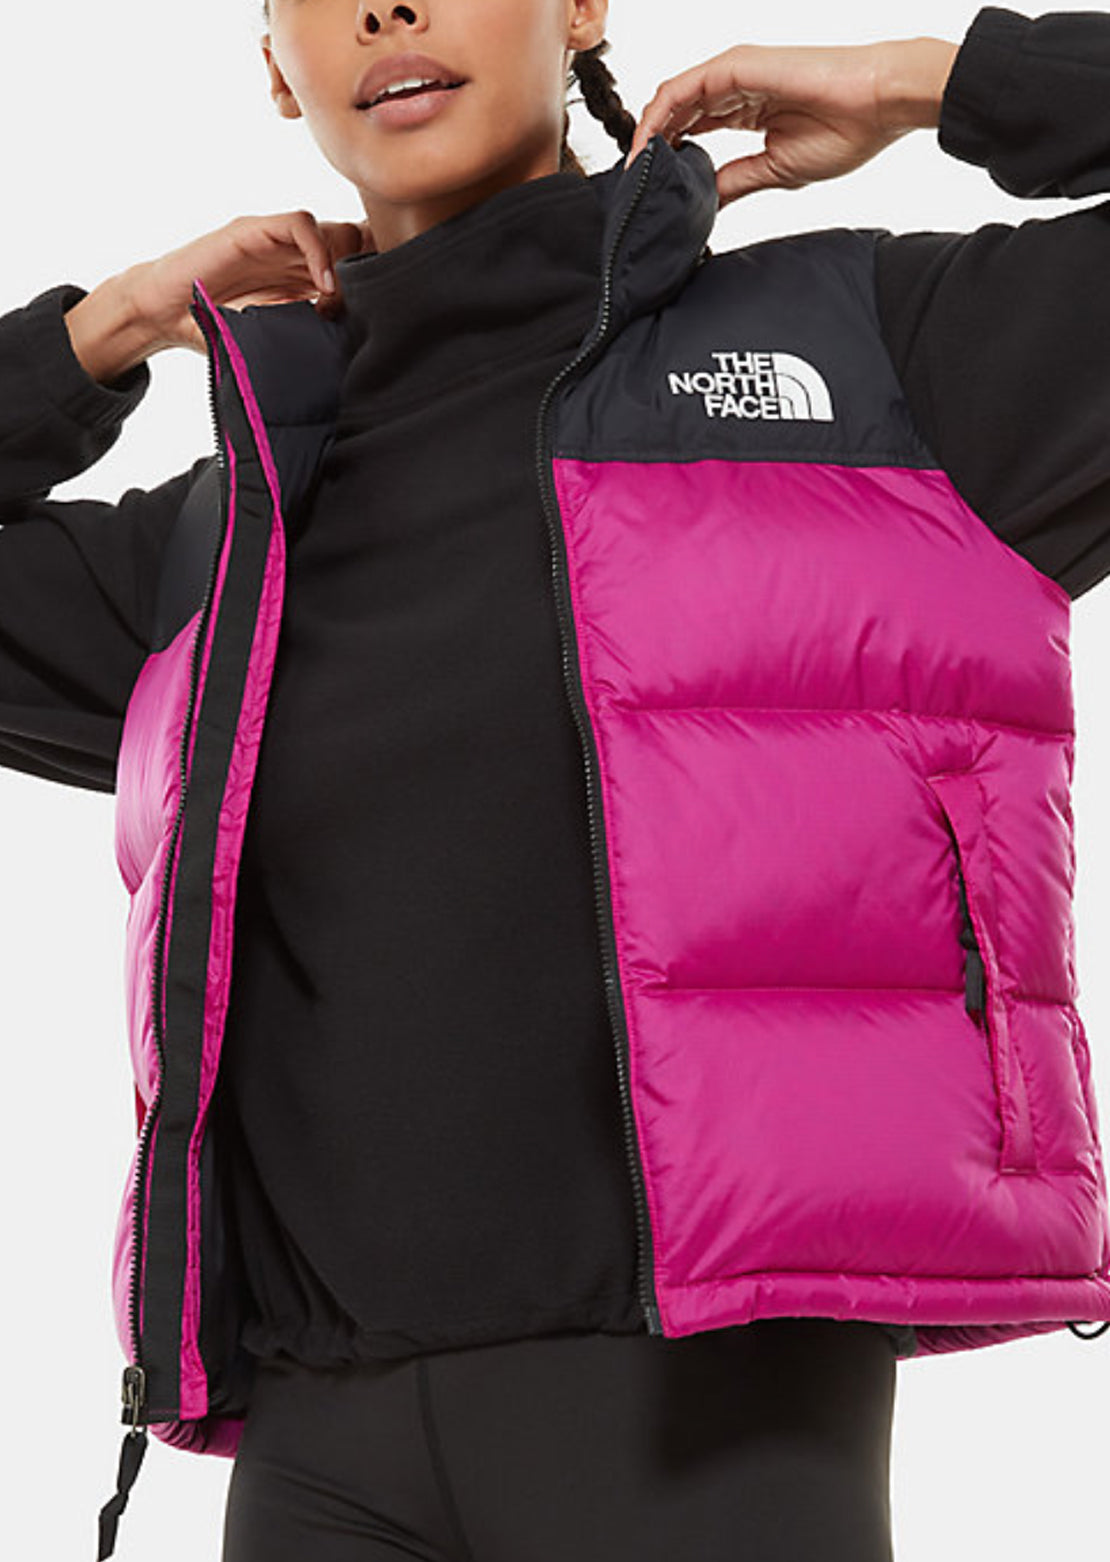 The North Face Women's 1996 Retro Nuptse Vest Wild Aster Purple